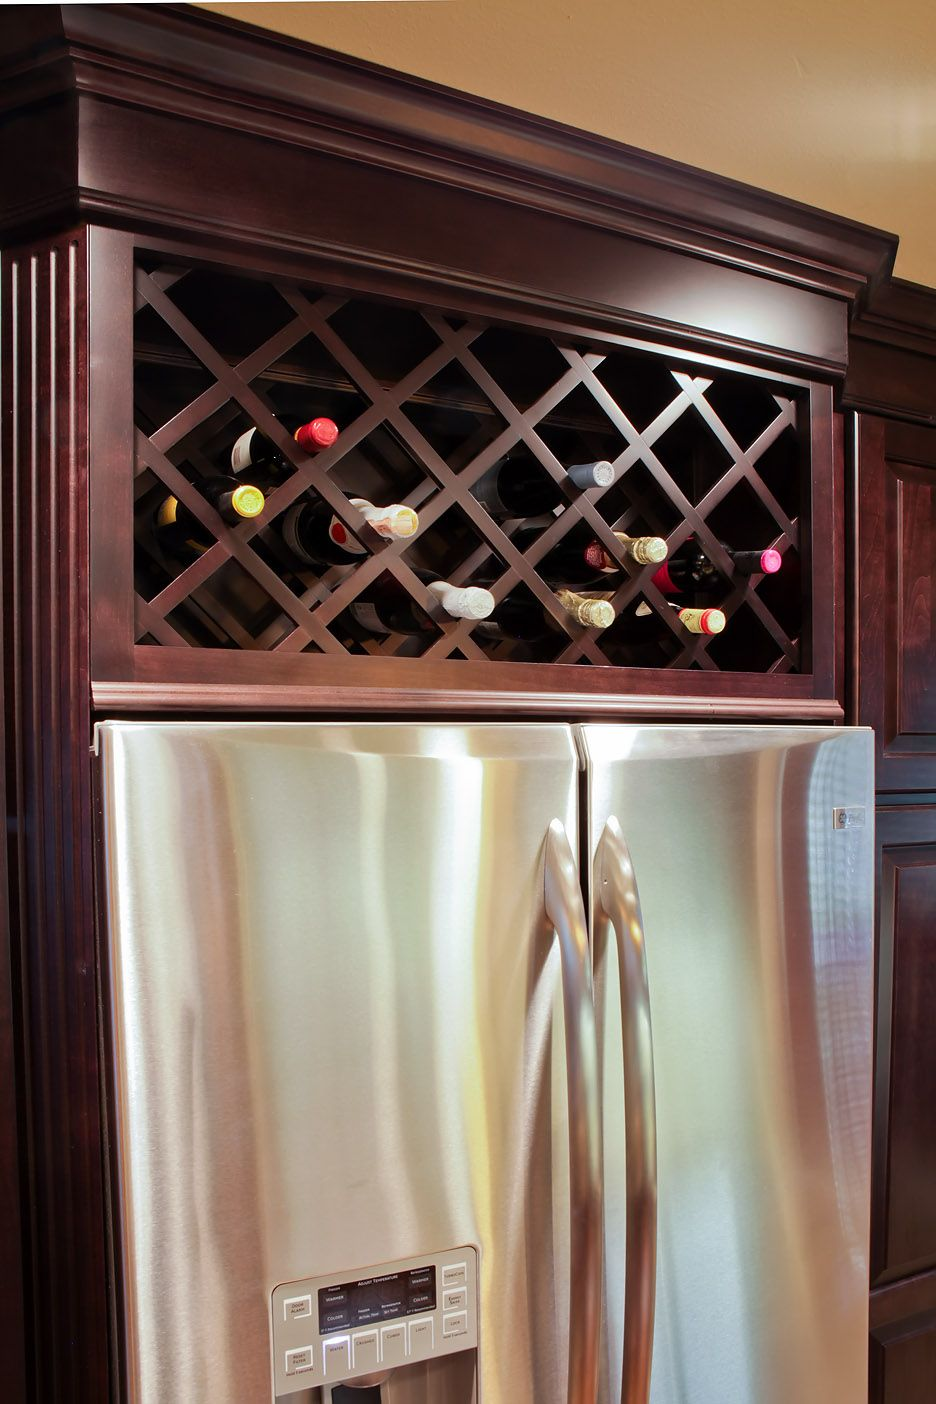 Gallery Red River Remodelers Kitchen Cabinet Wine Rack Built In Wine Rack Wine Rack Design